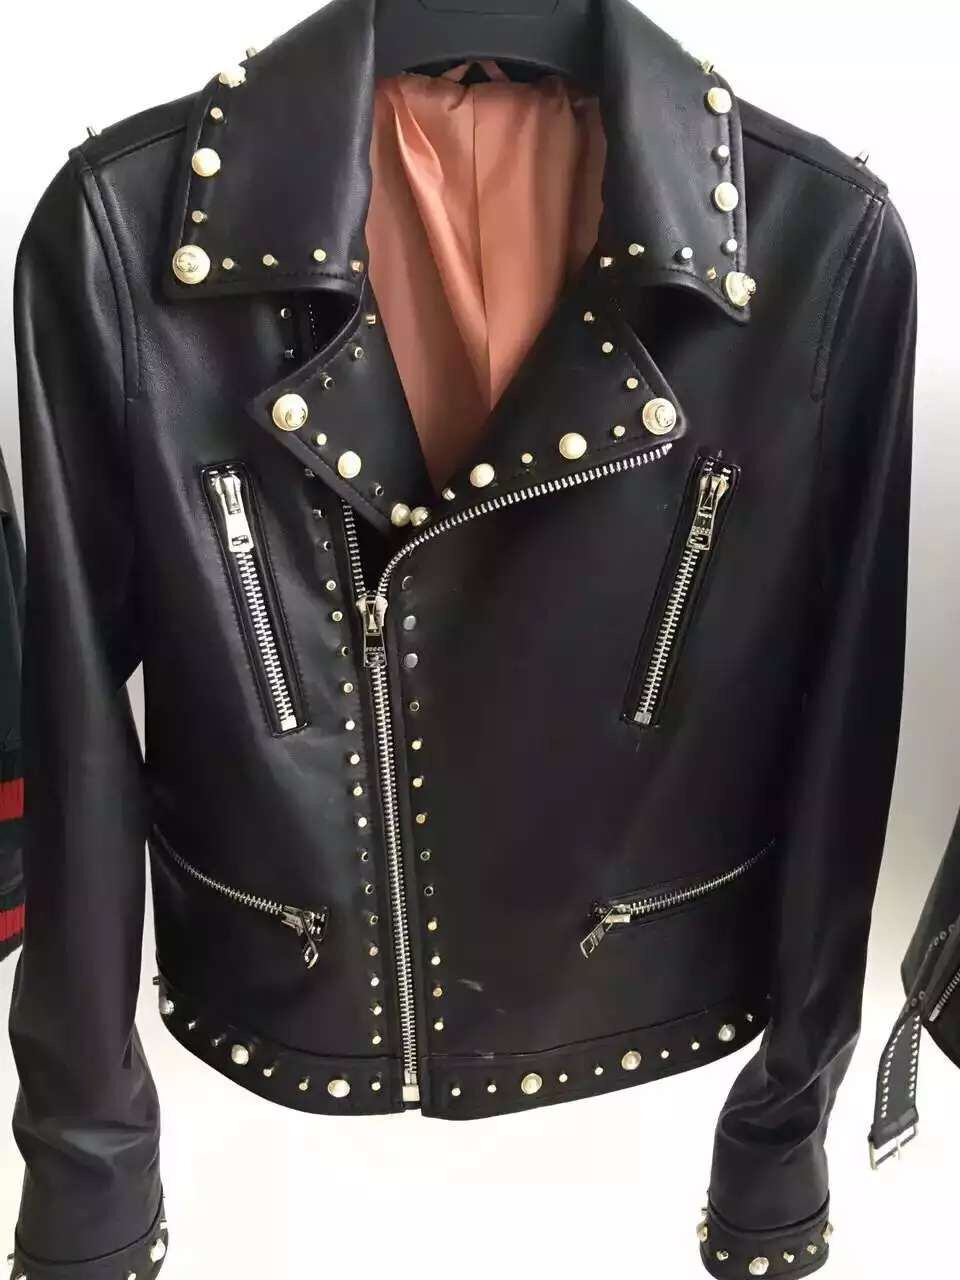 High quality leather jacket women 2016 new autumn women's leather jacket fashion casual leather jacket(China (Mainland))